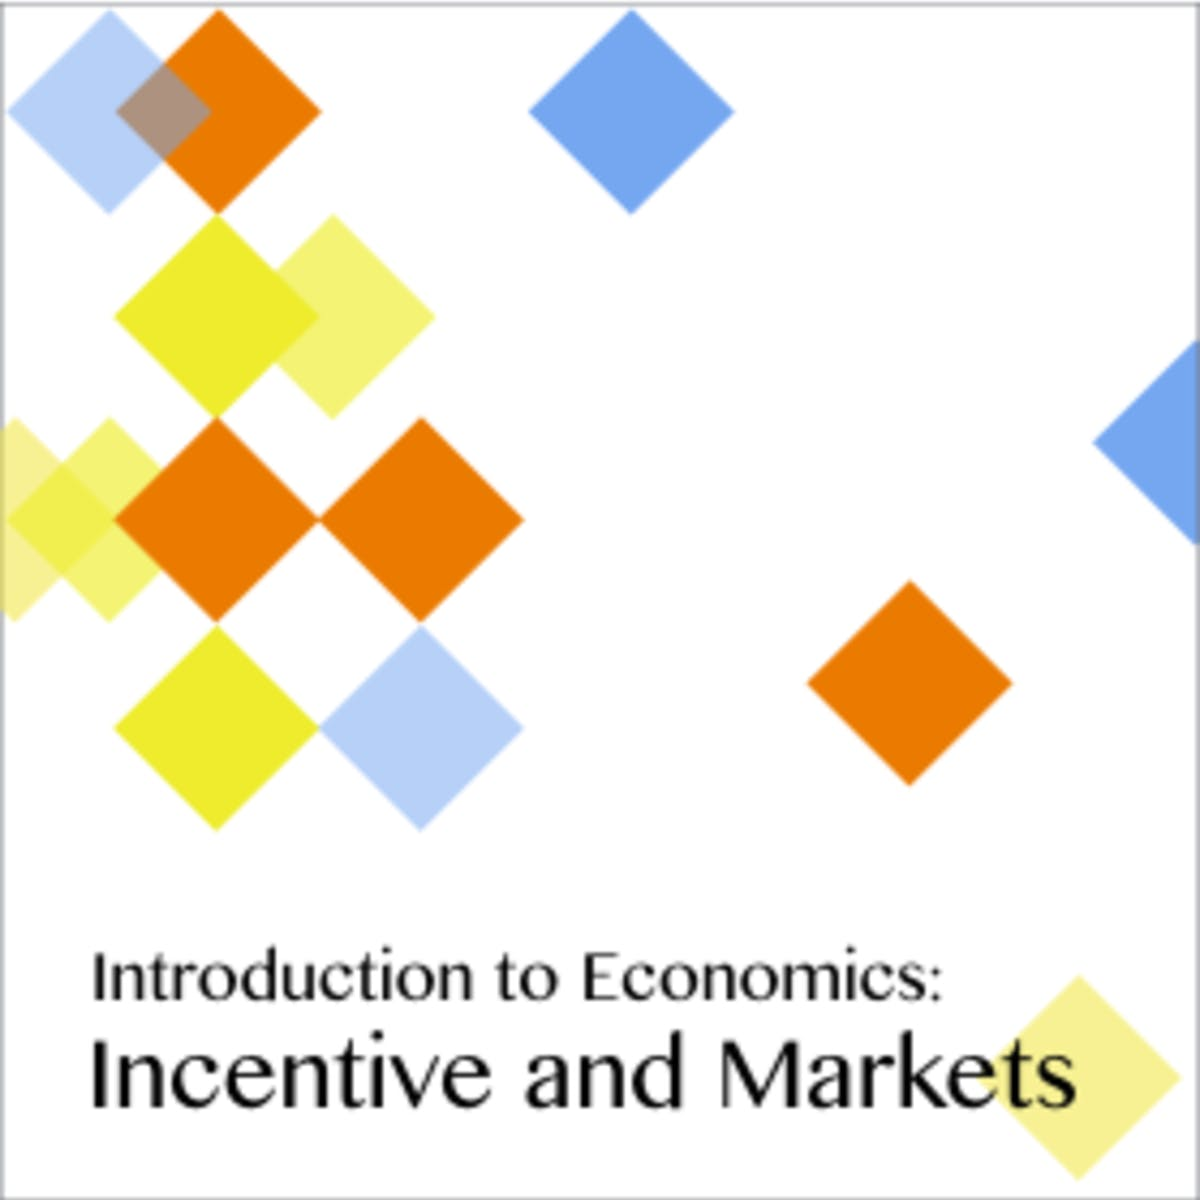 經濟學概論:誘因與市場(Introduction to Economics: Incentive and Markets)